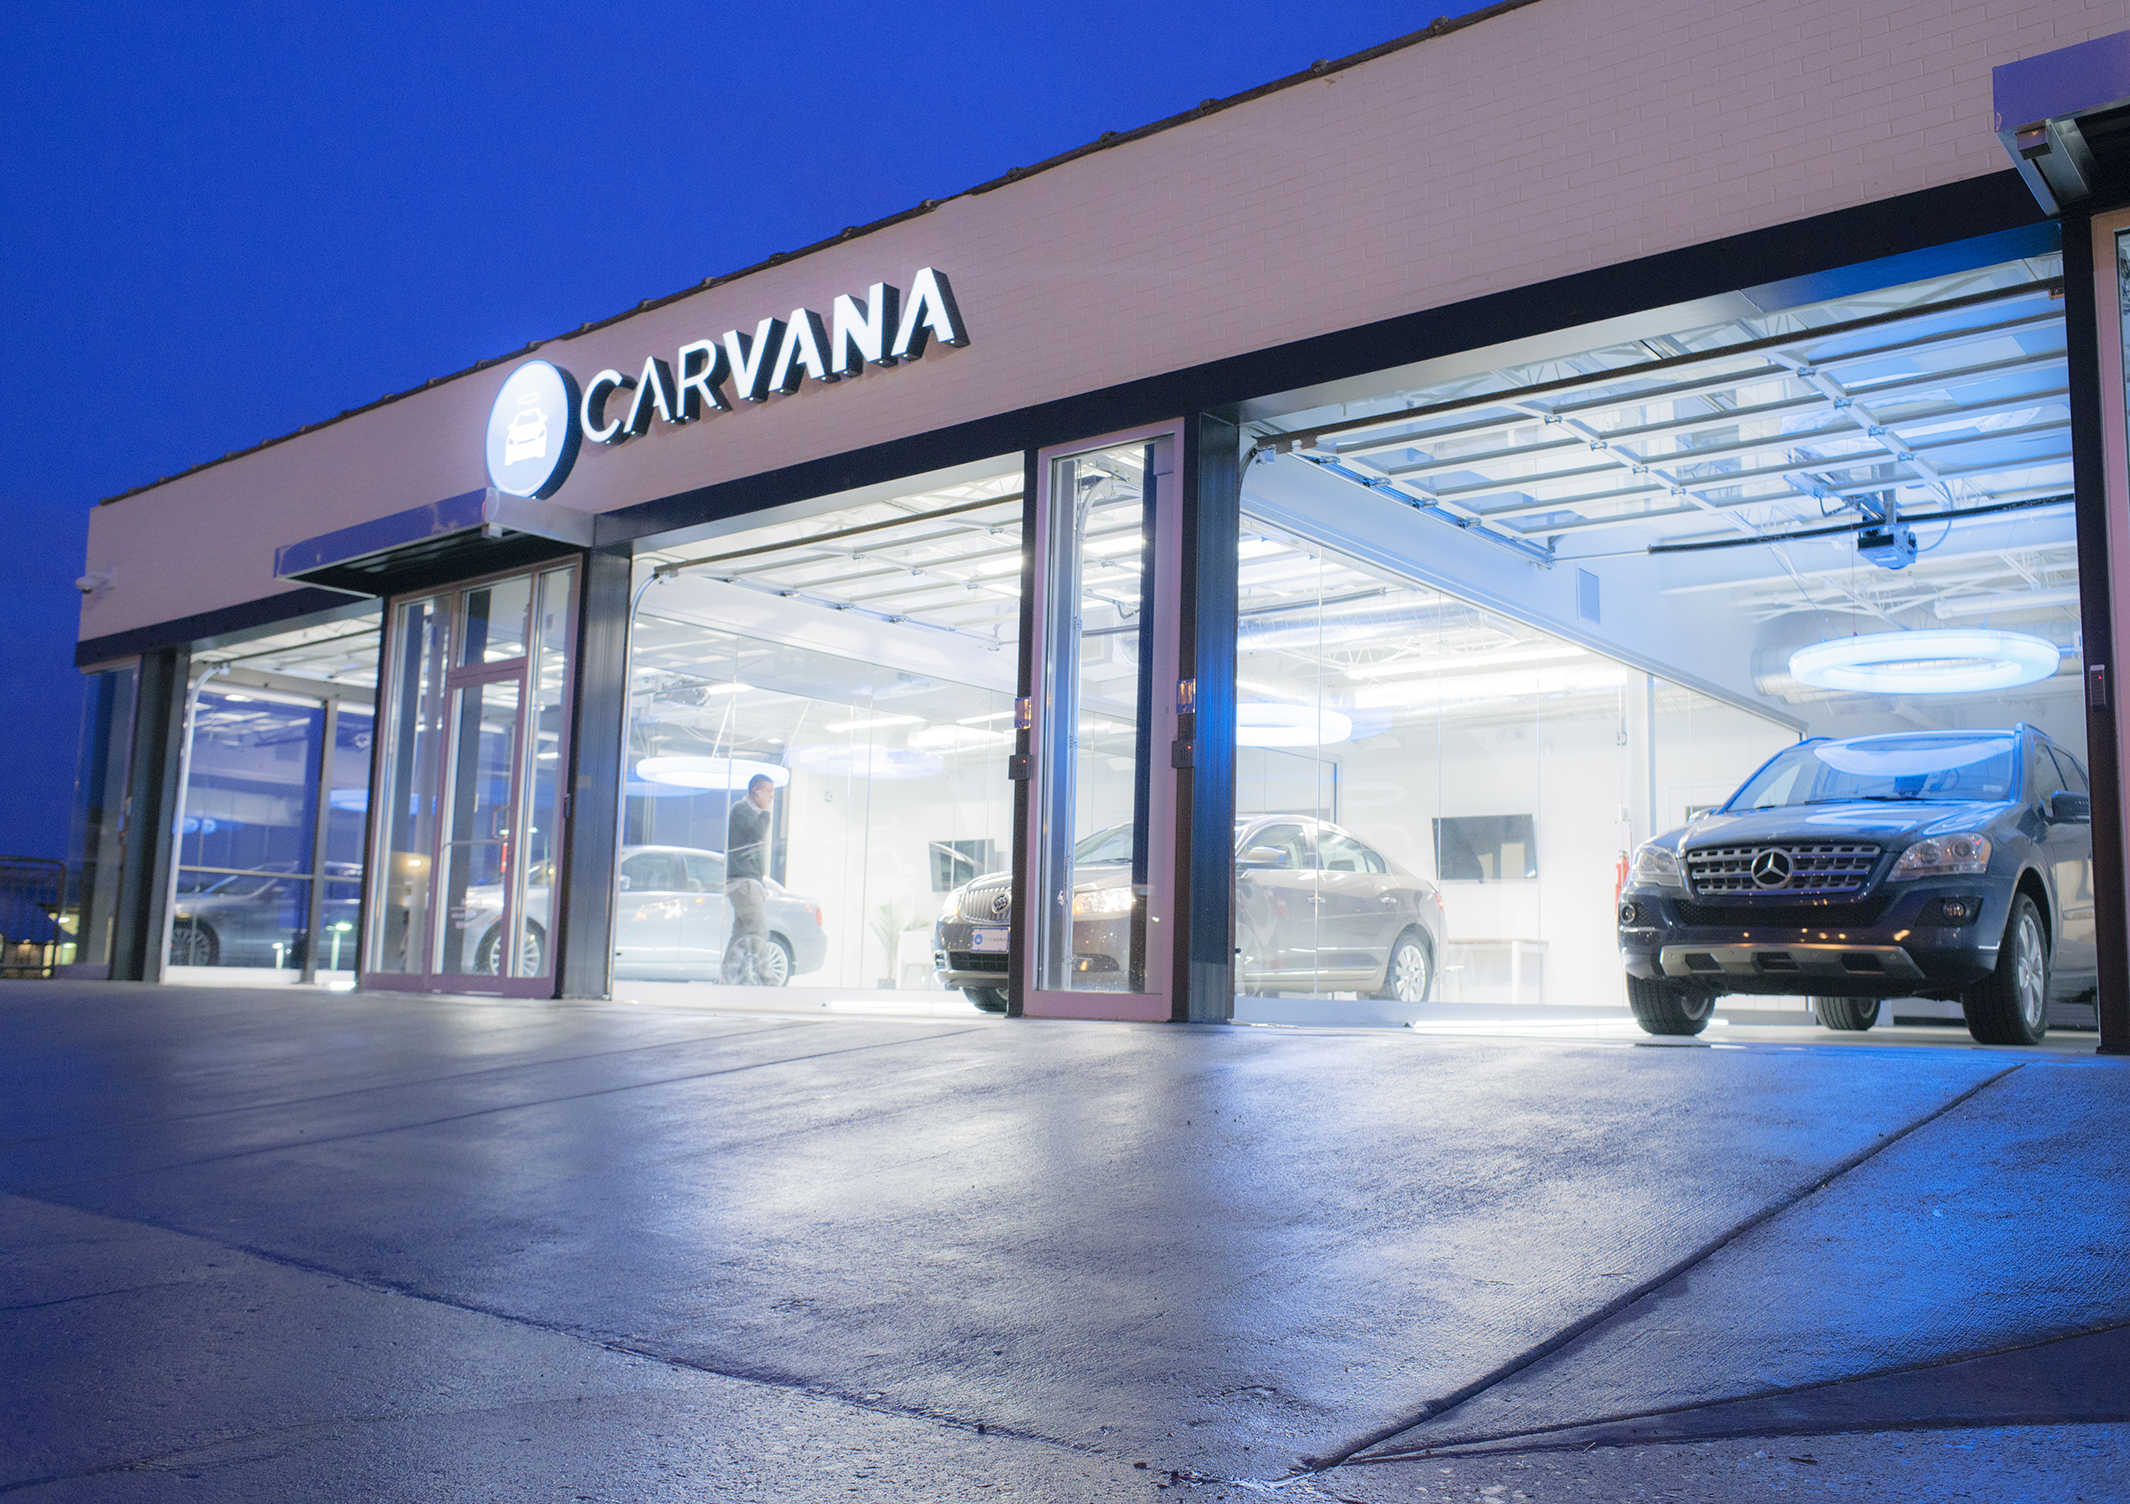 Carvana's pick-up facility in Atlanta for cars purchased online.